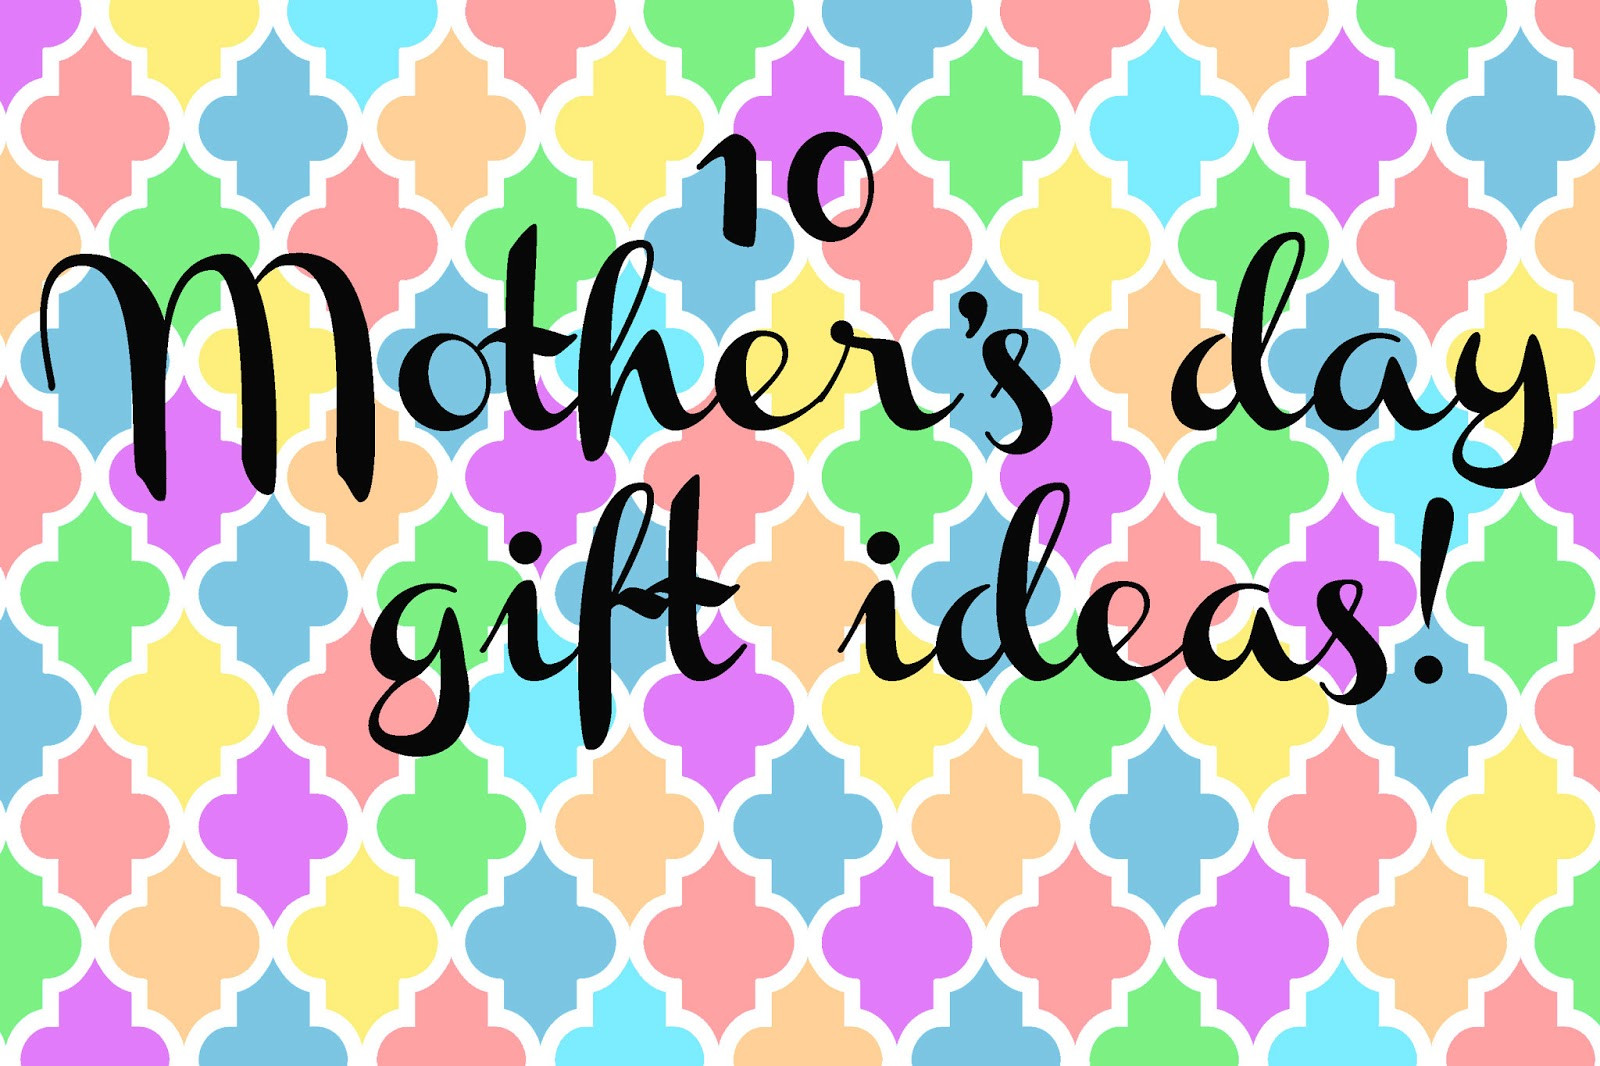 Great Mothers Day Gift Ideas  Doodlecraft 10 Great Mother s Day Gift Ideas